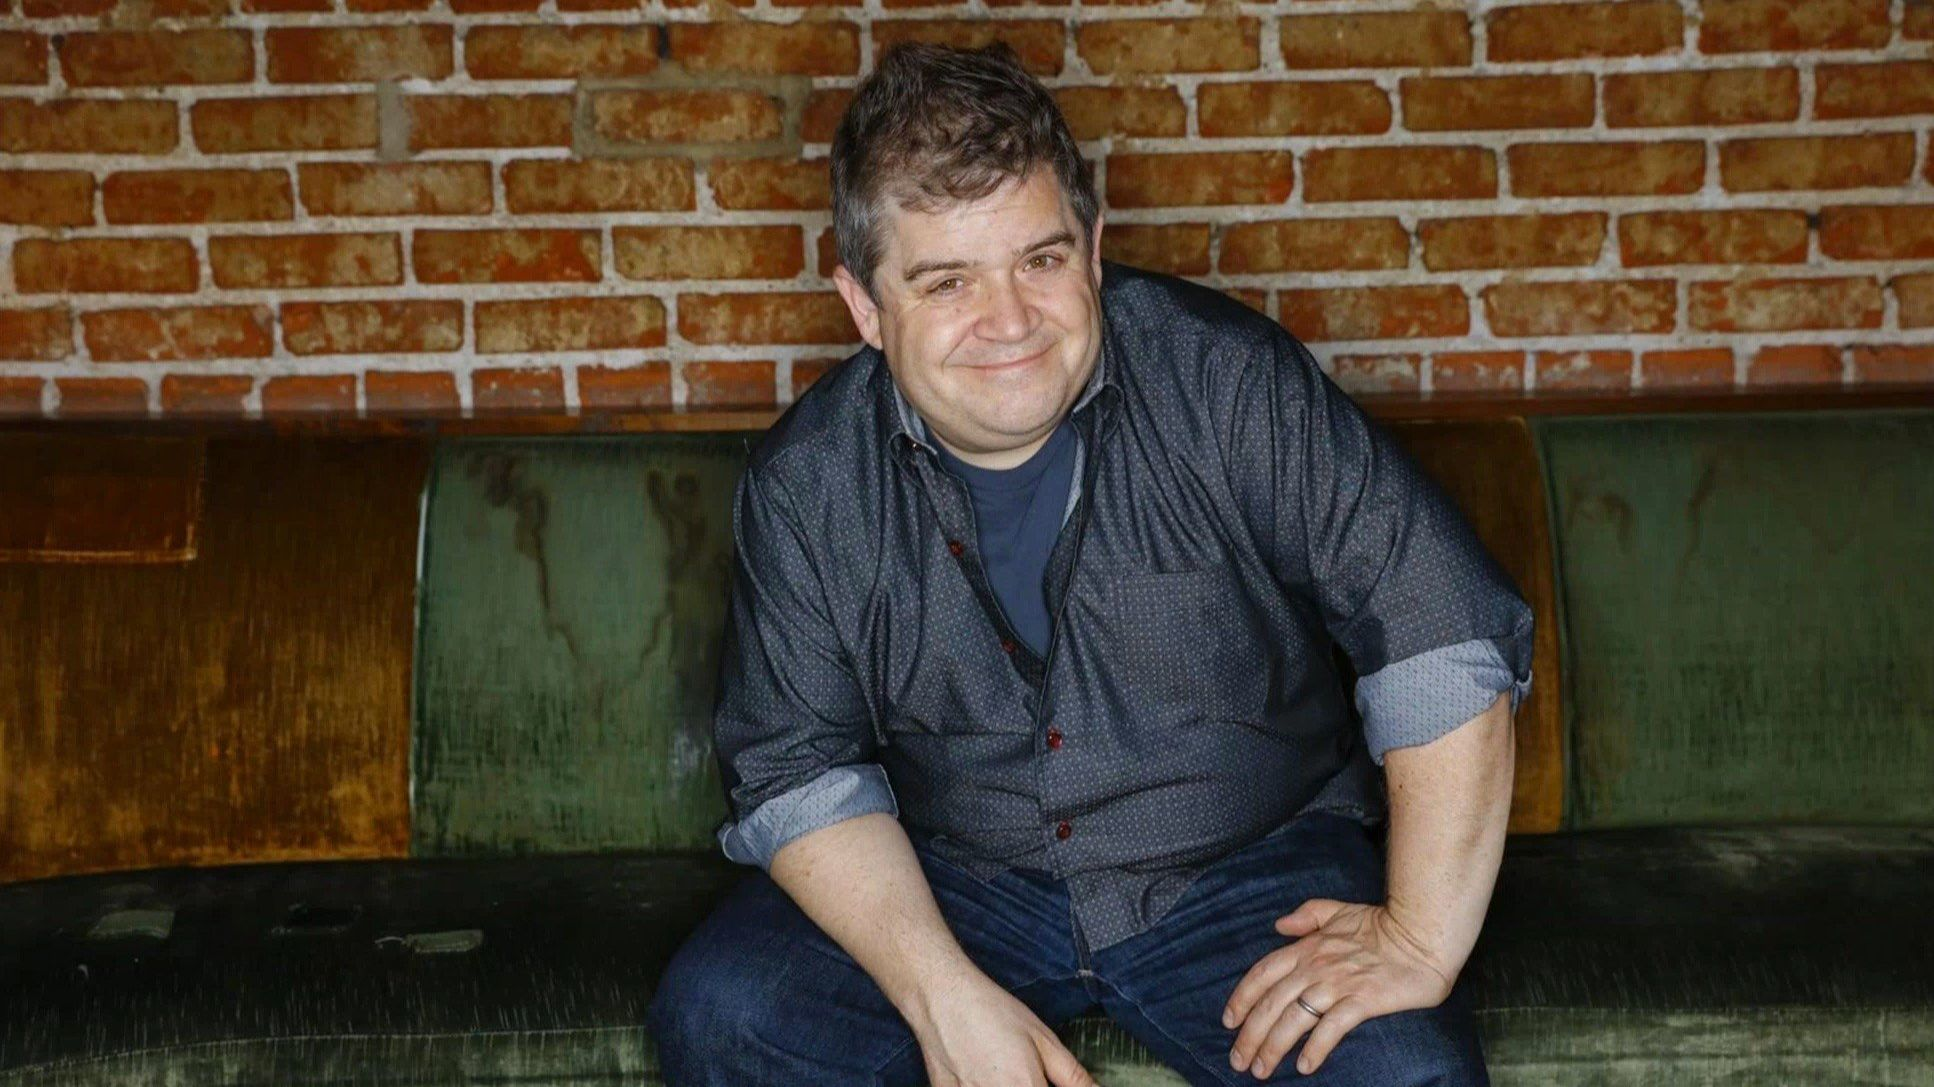 Comedian Patton Oswalt is coming to the Den, tickets on sale now